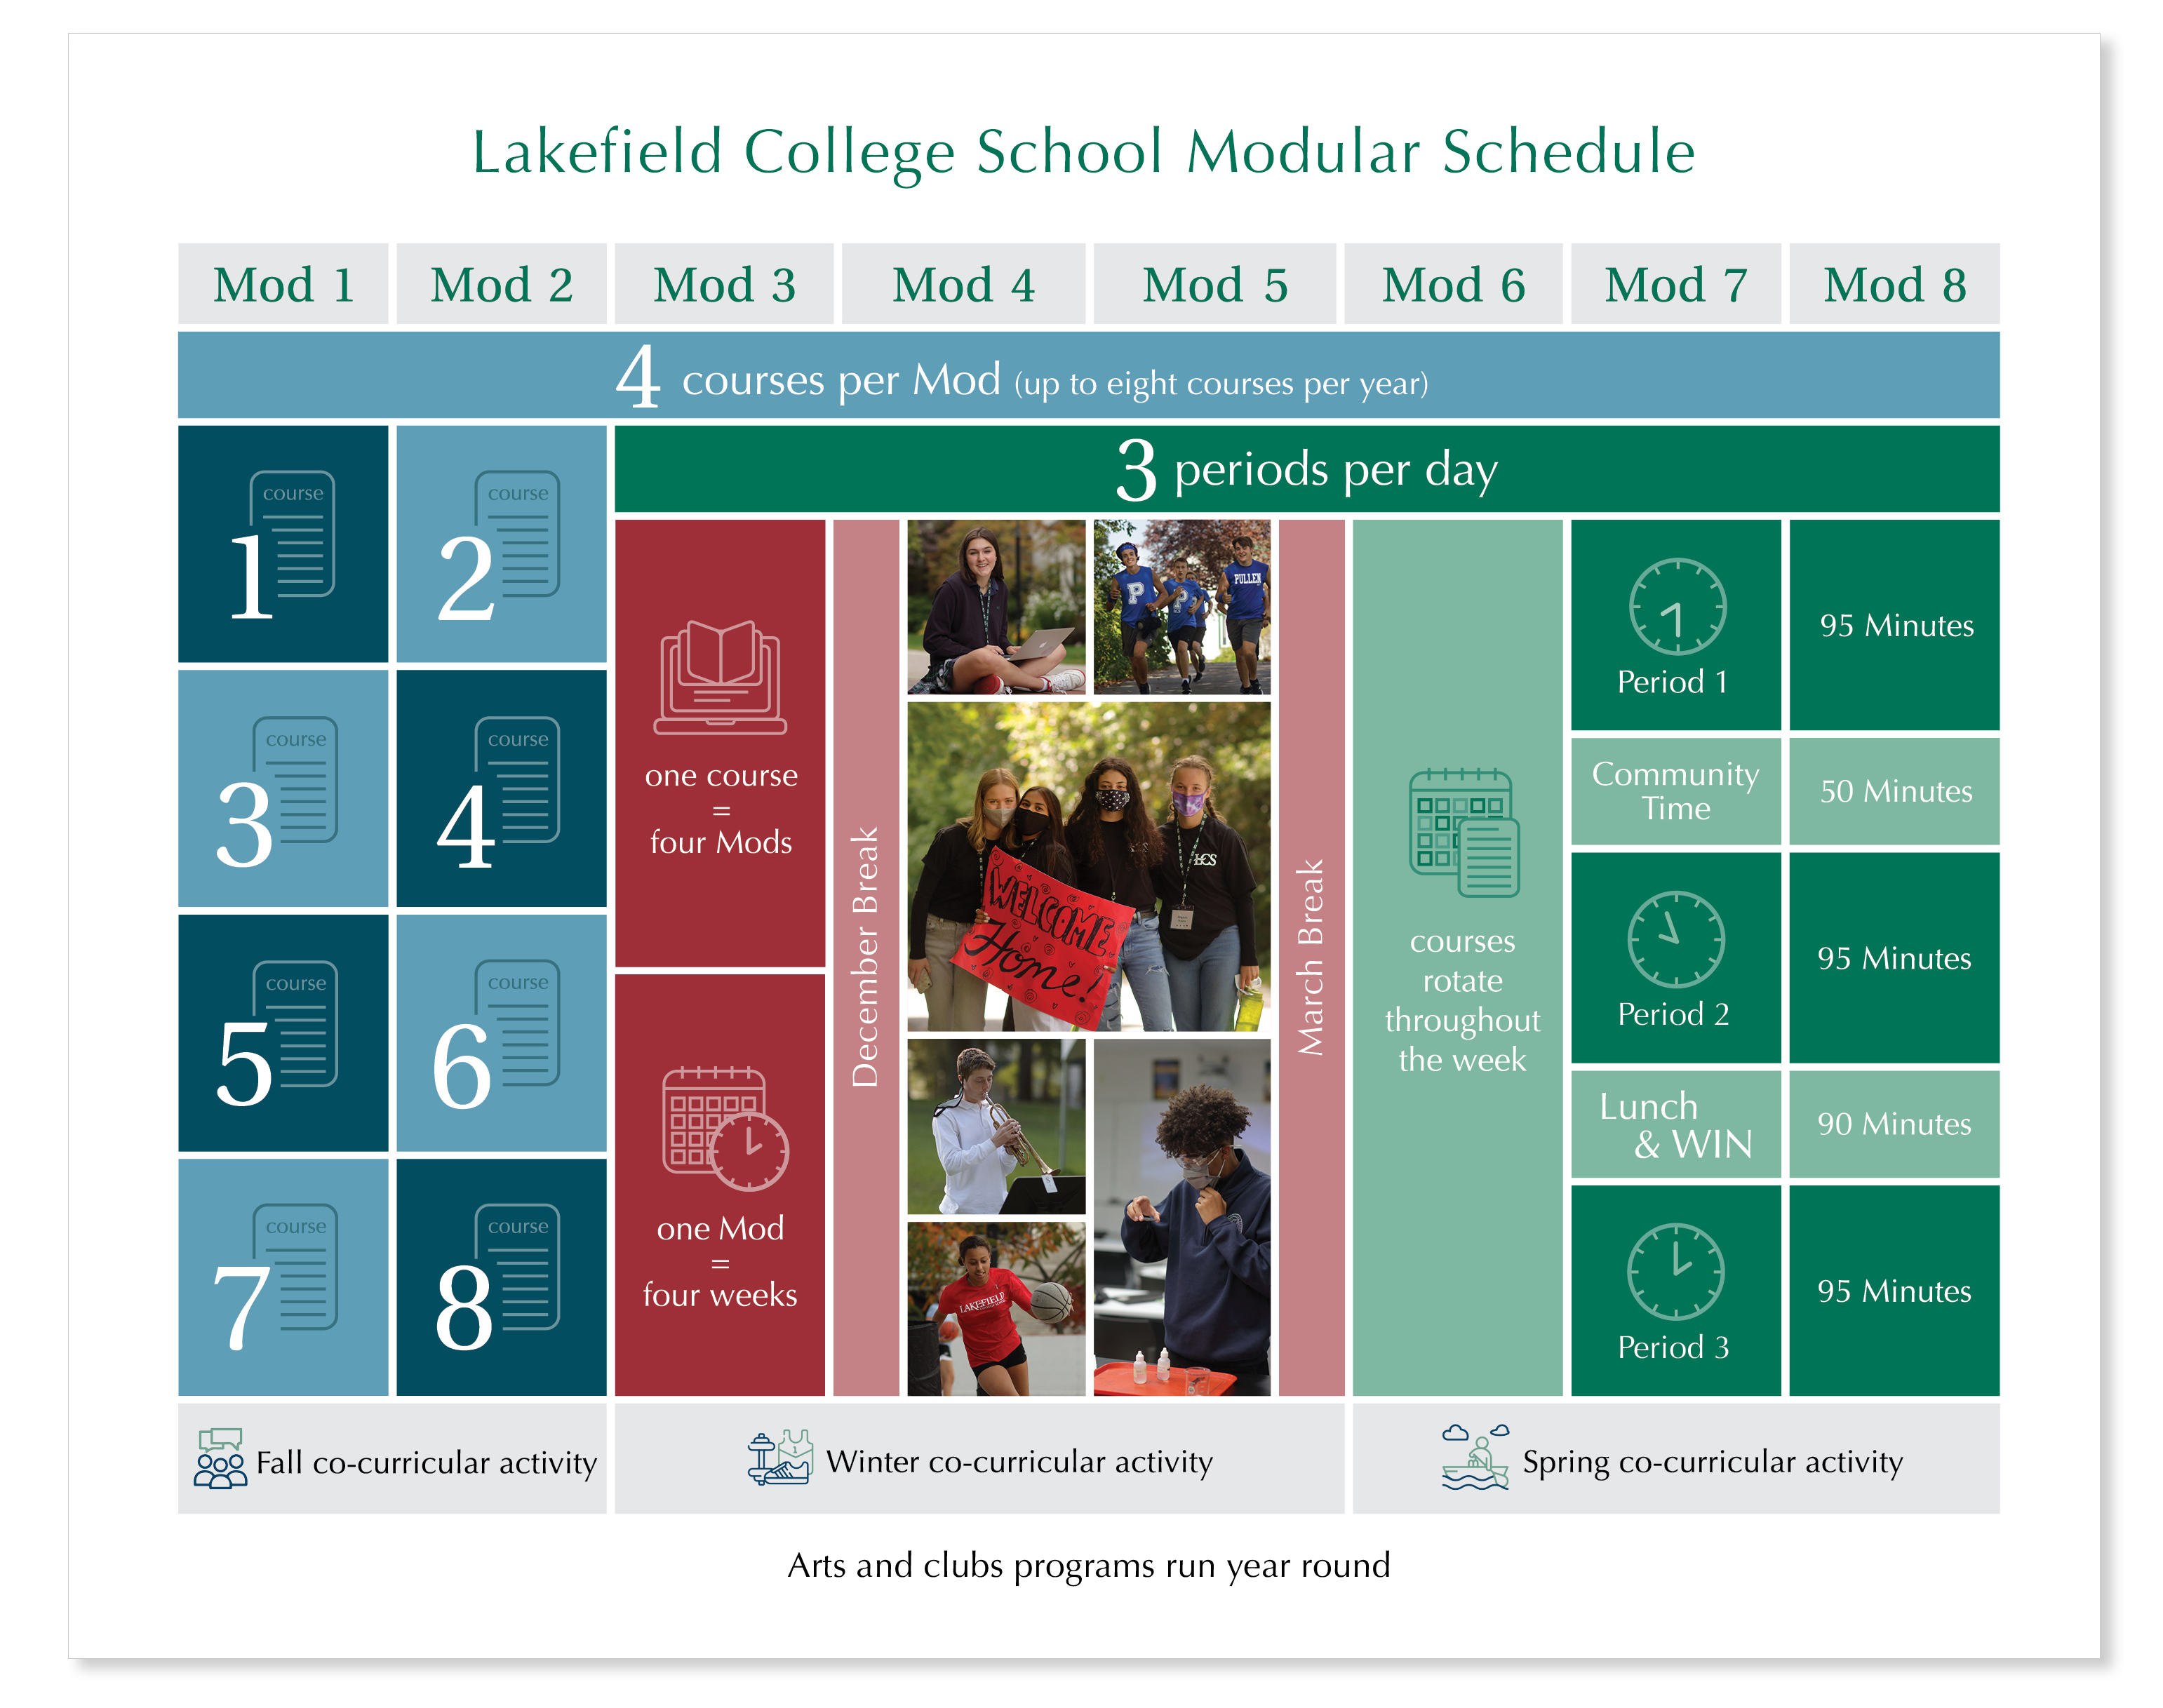 A Learning Schedule Designed For Student Well-Being and Engagement